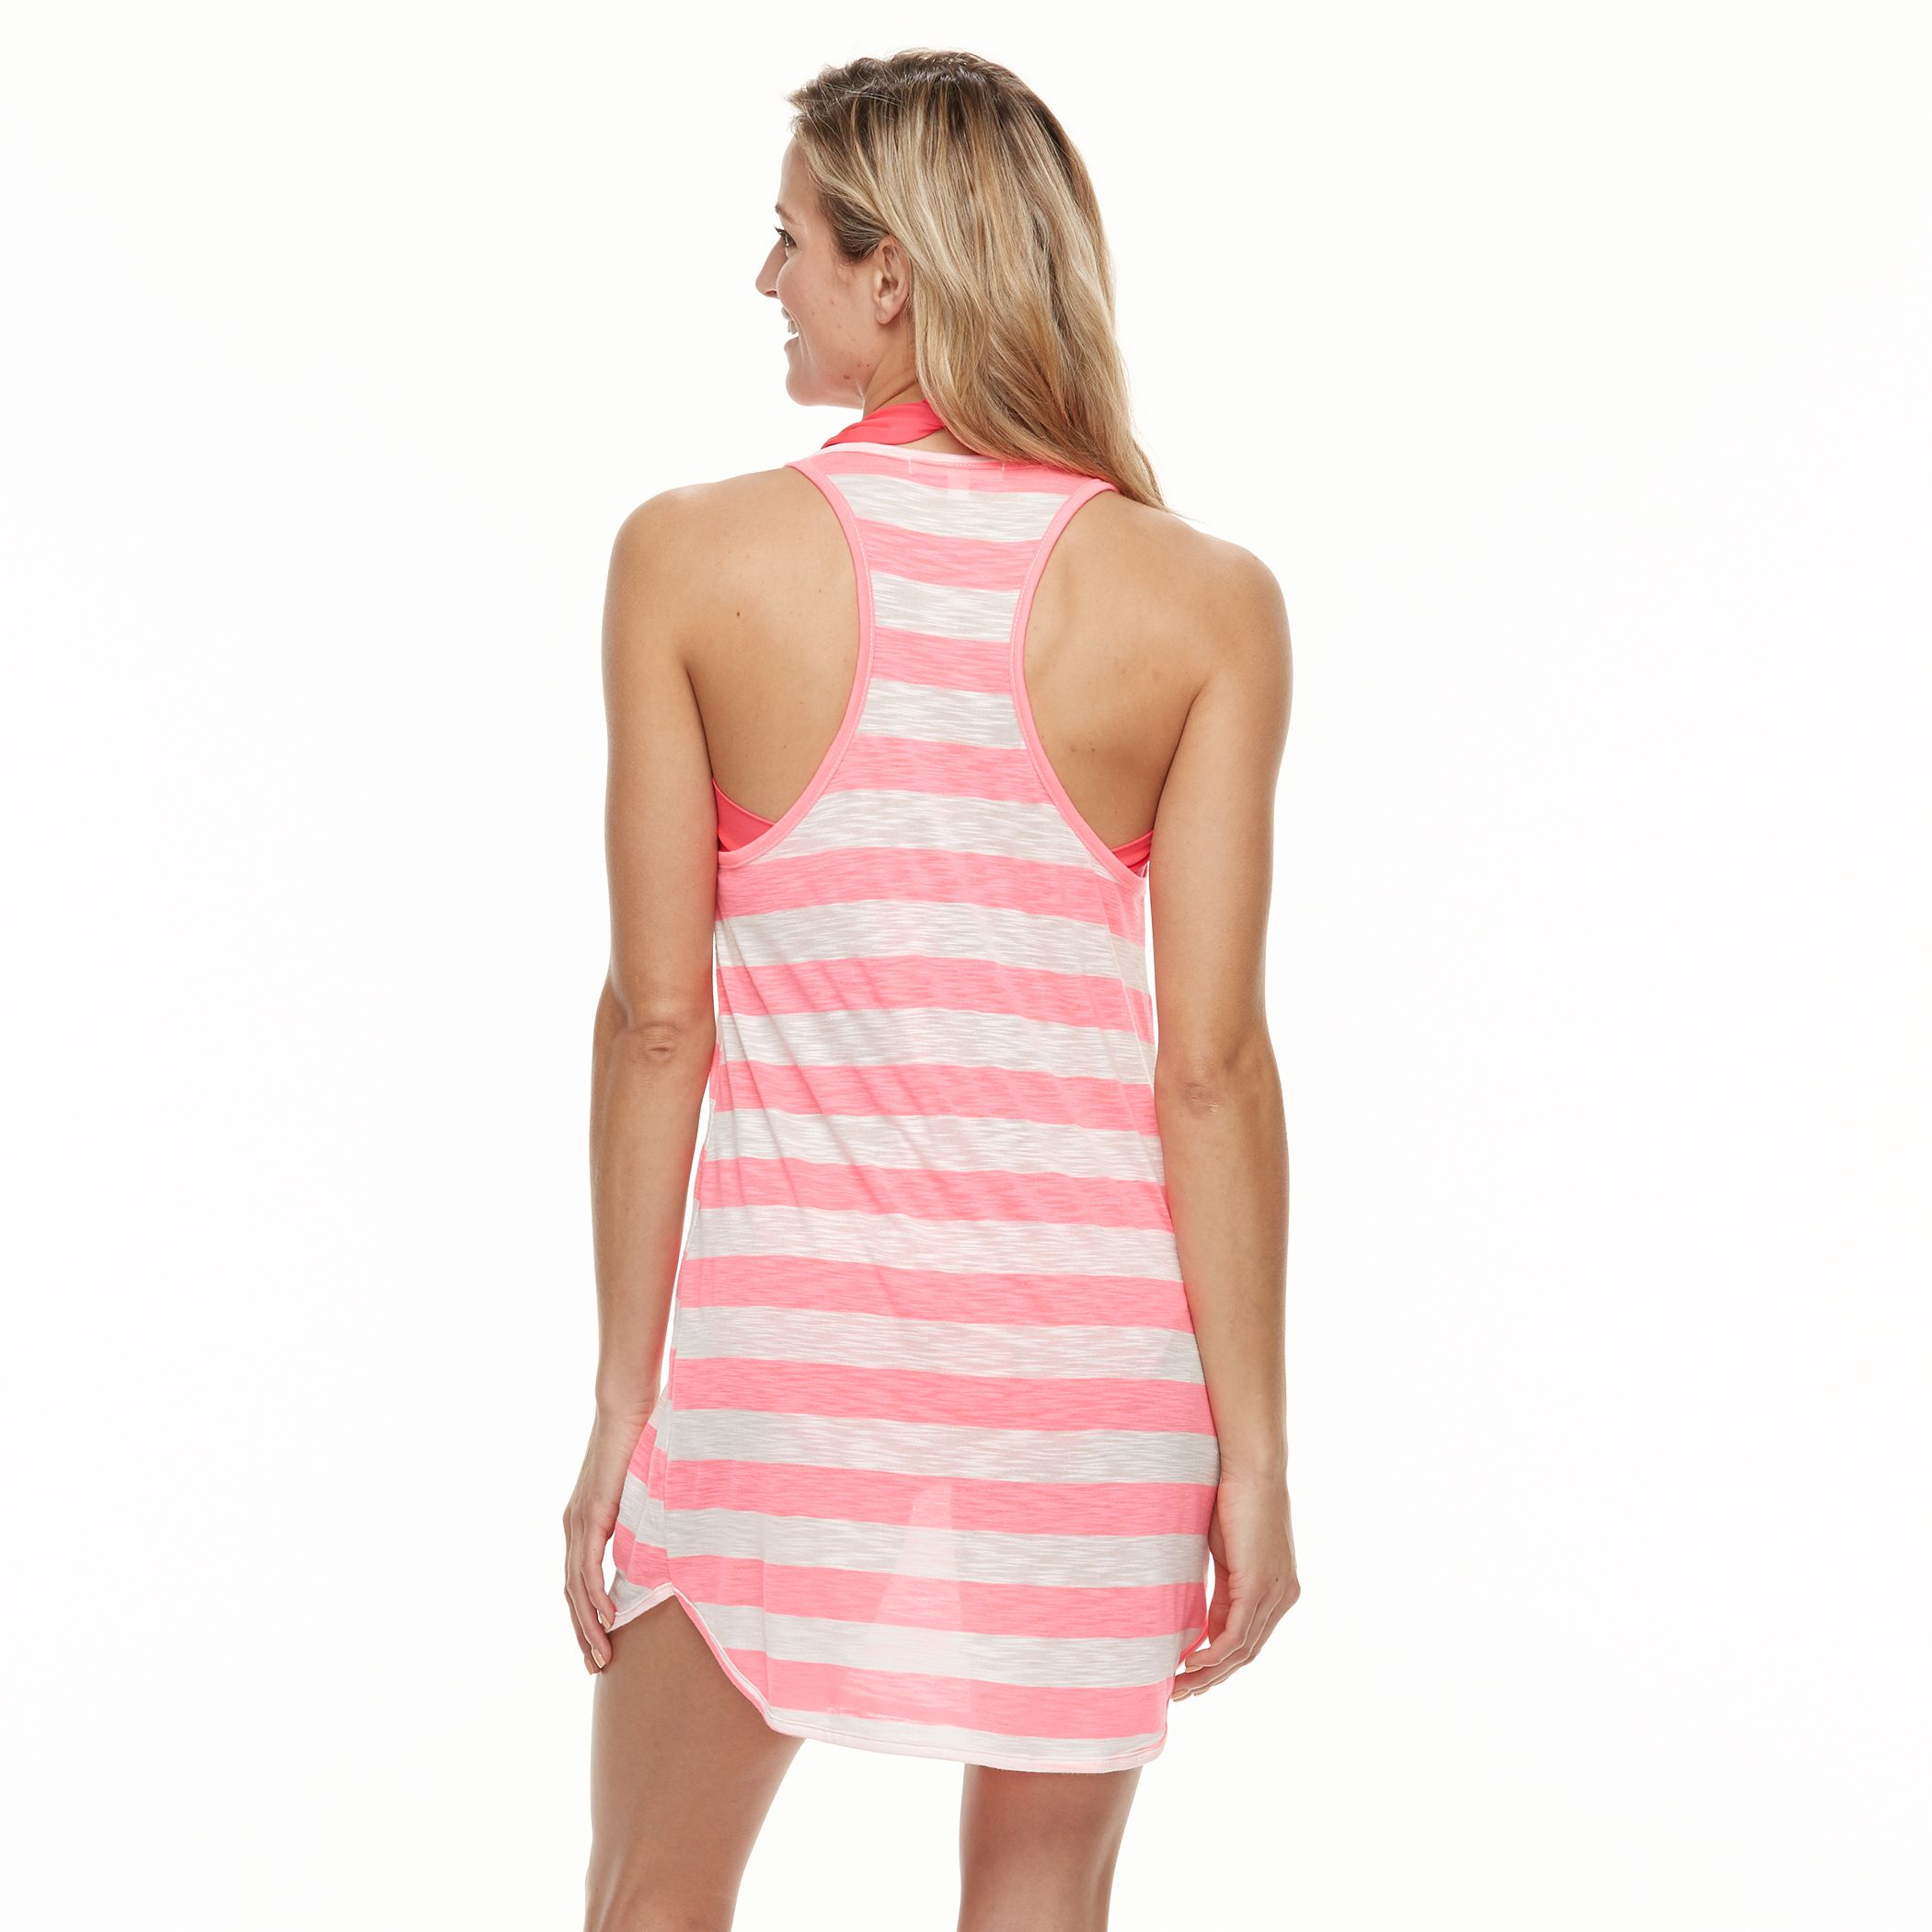 Miken Swimsuit CoverUps Swimsuits, Clothing | Kohl\'s